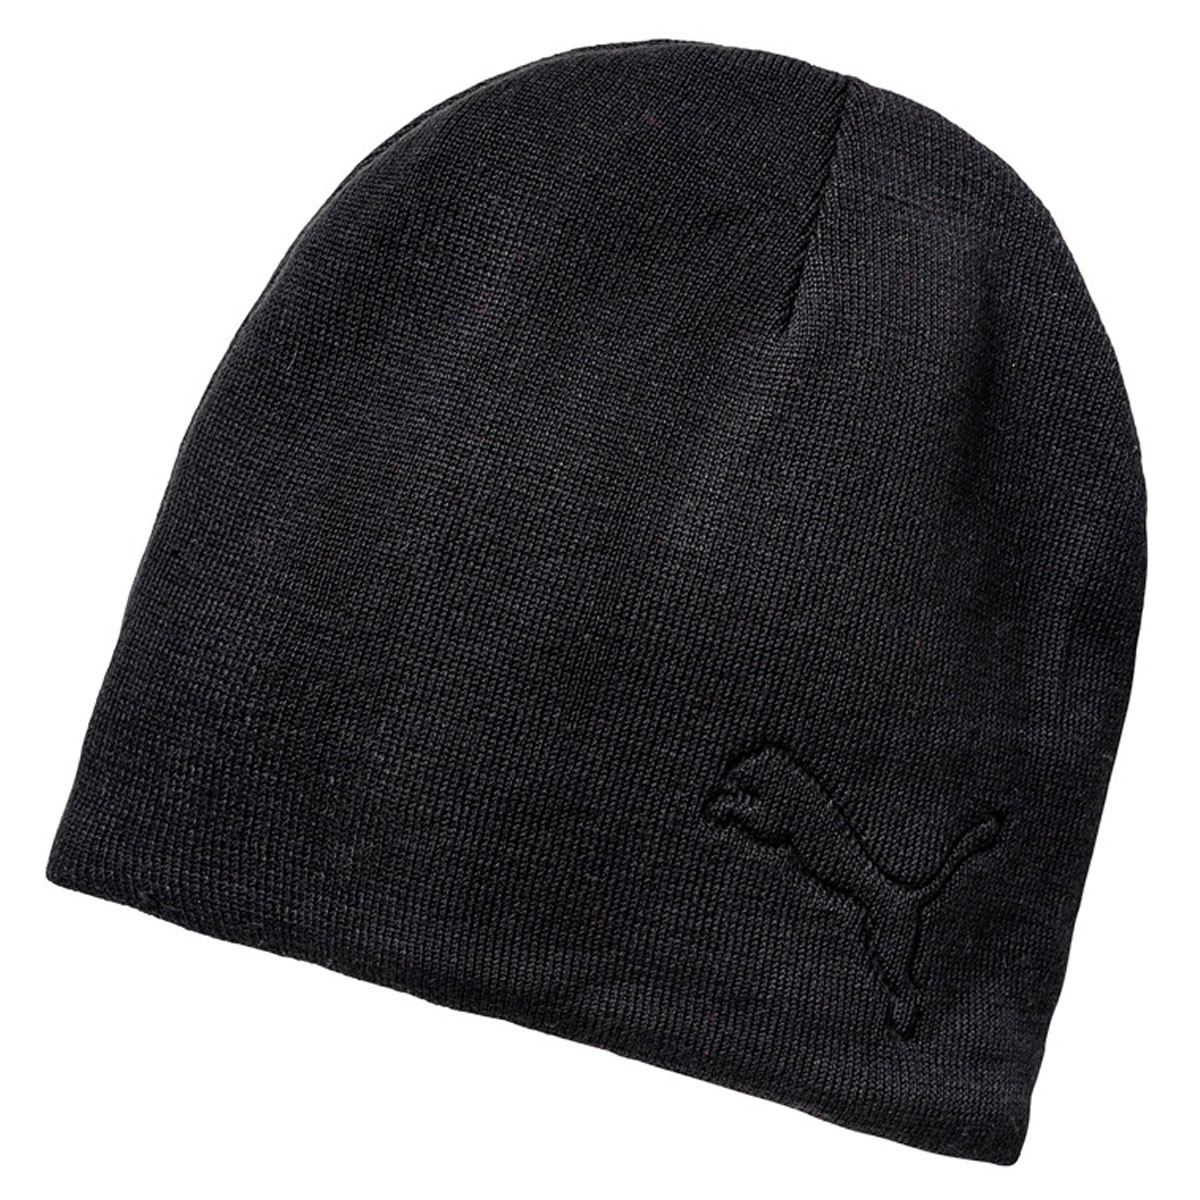 1337af60a8f Puma Golf Mens Reversible Beanie Hat